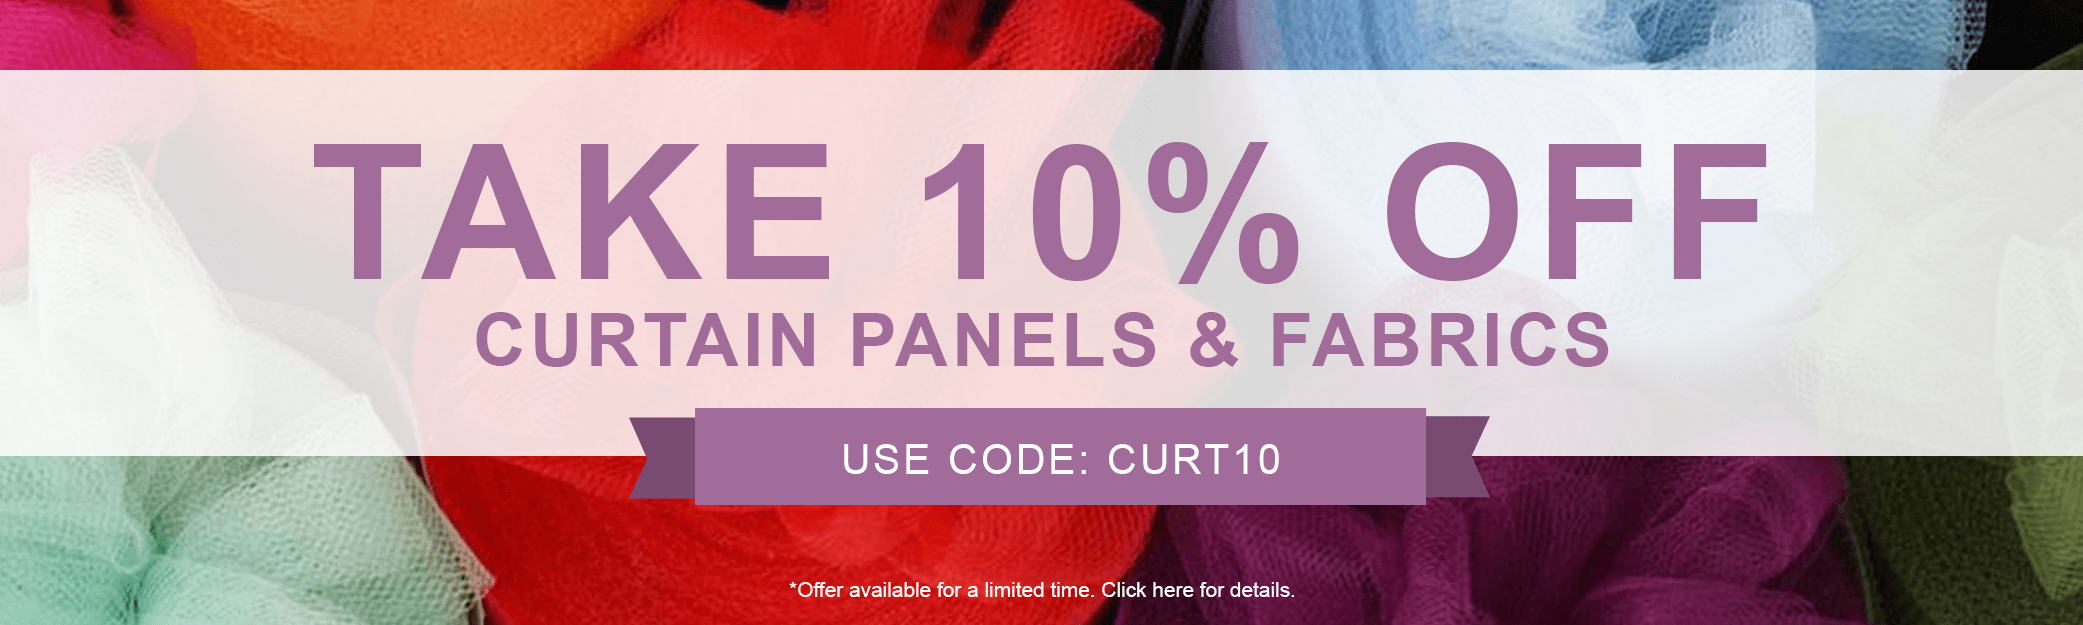 10% Off Curtains & Fabrics